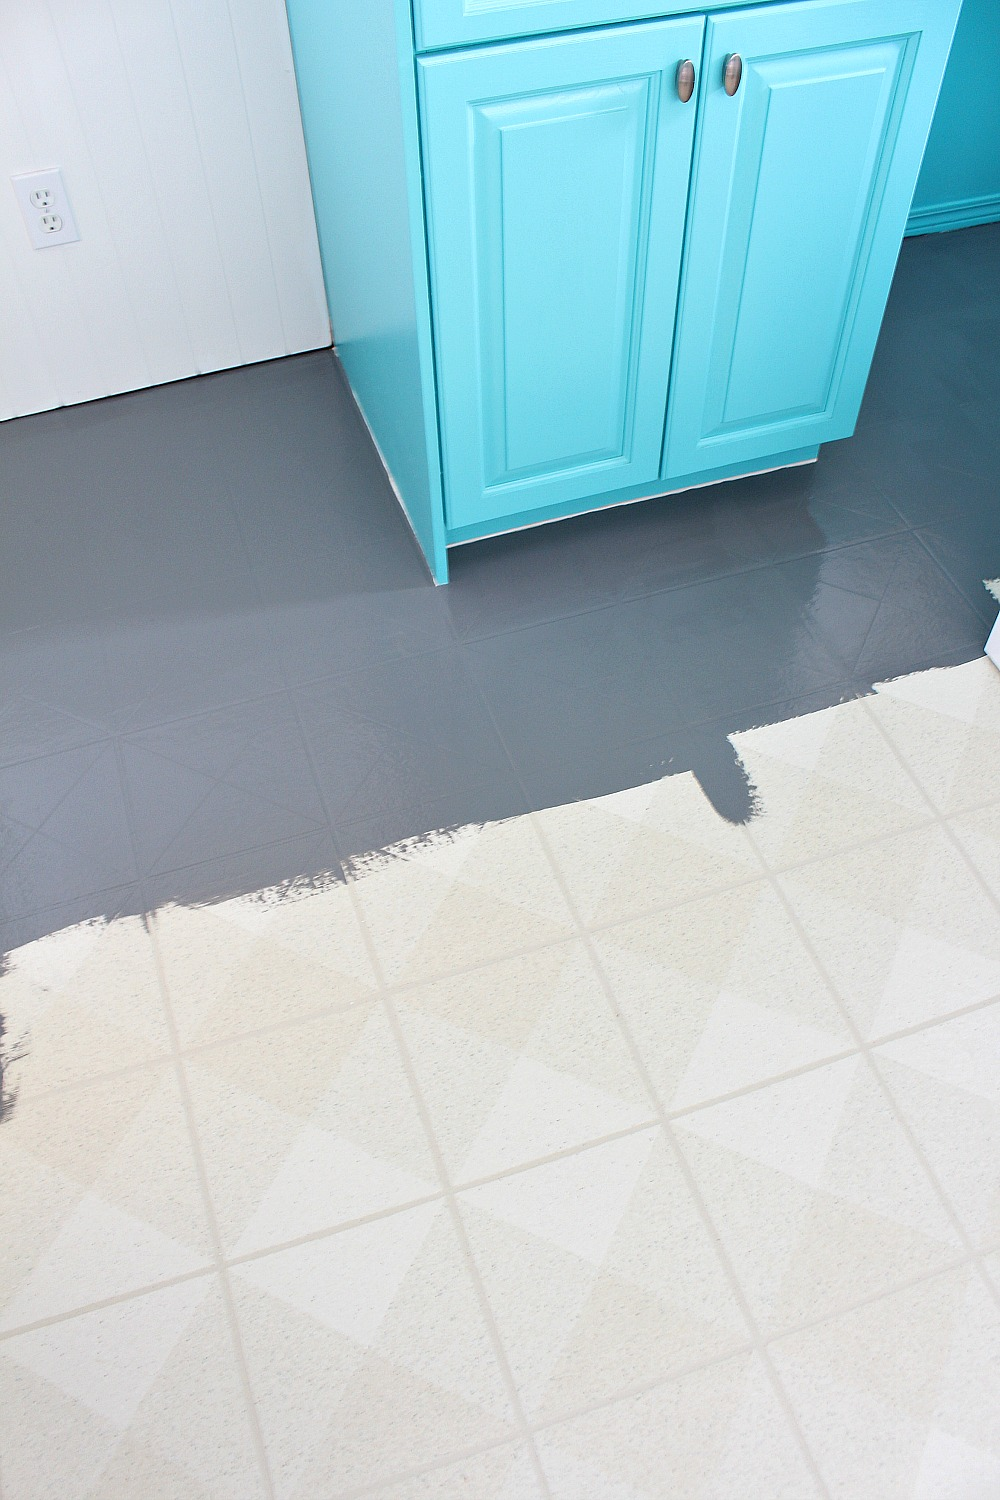 How to paint a vinyl floor diy painted floors dans le for Painting vinyl floor tile